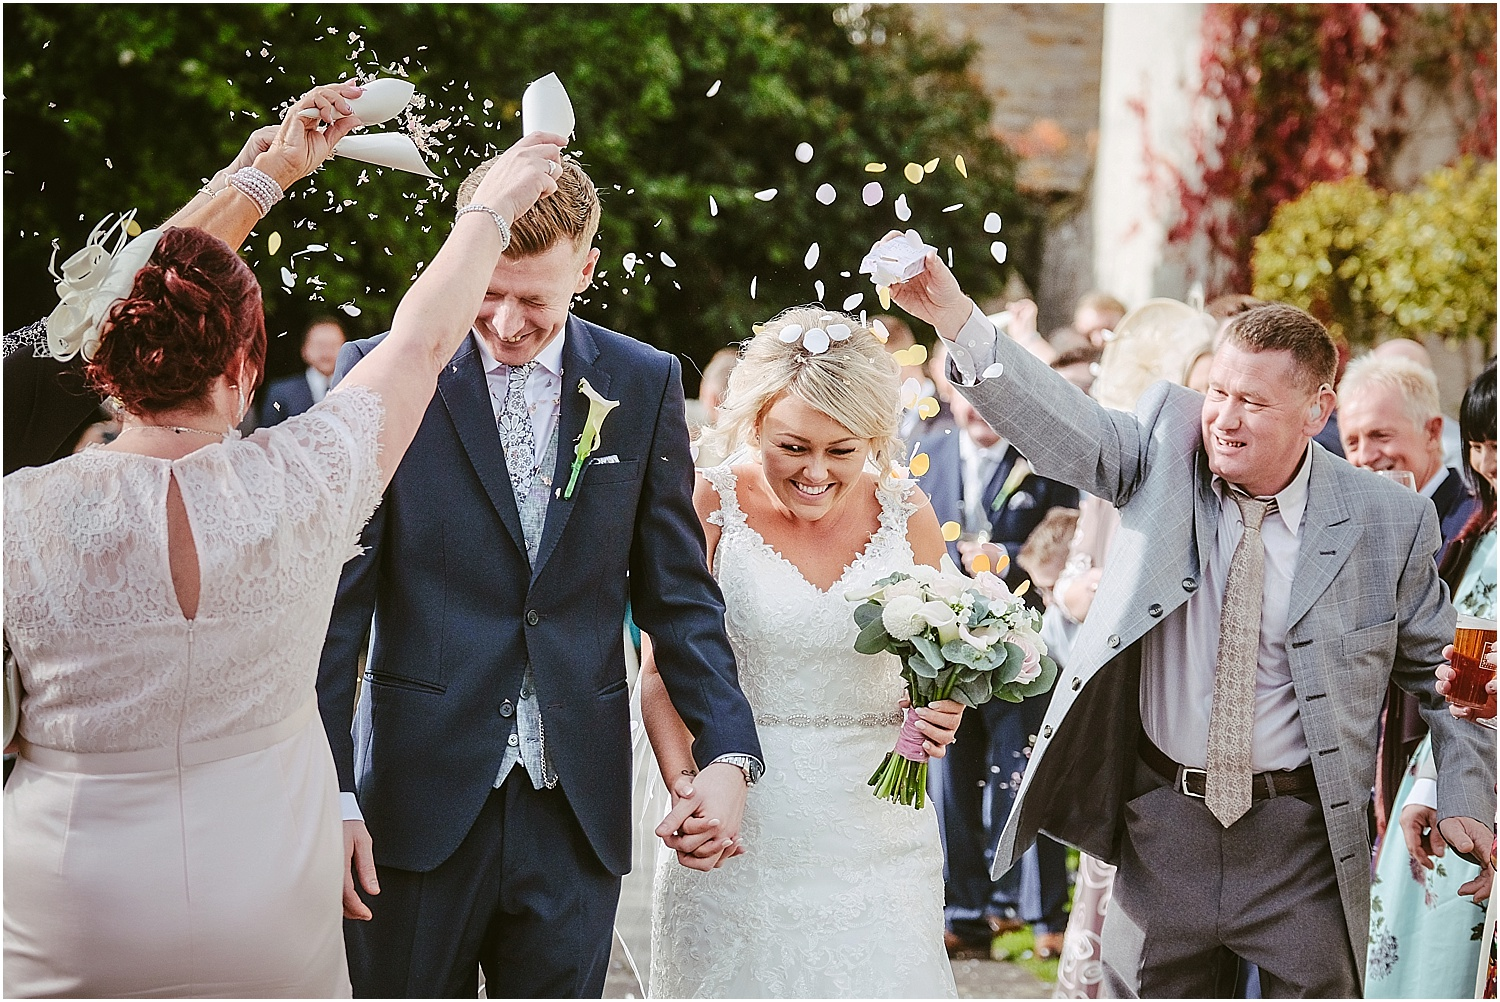 Lartington Hall weddings by www.2tonephotography.co.uk 059.jpg